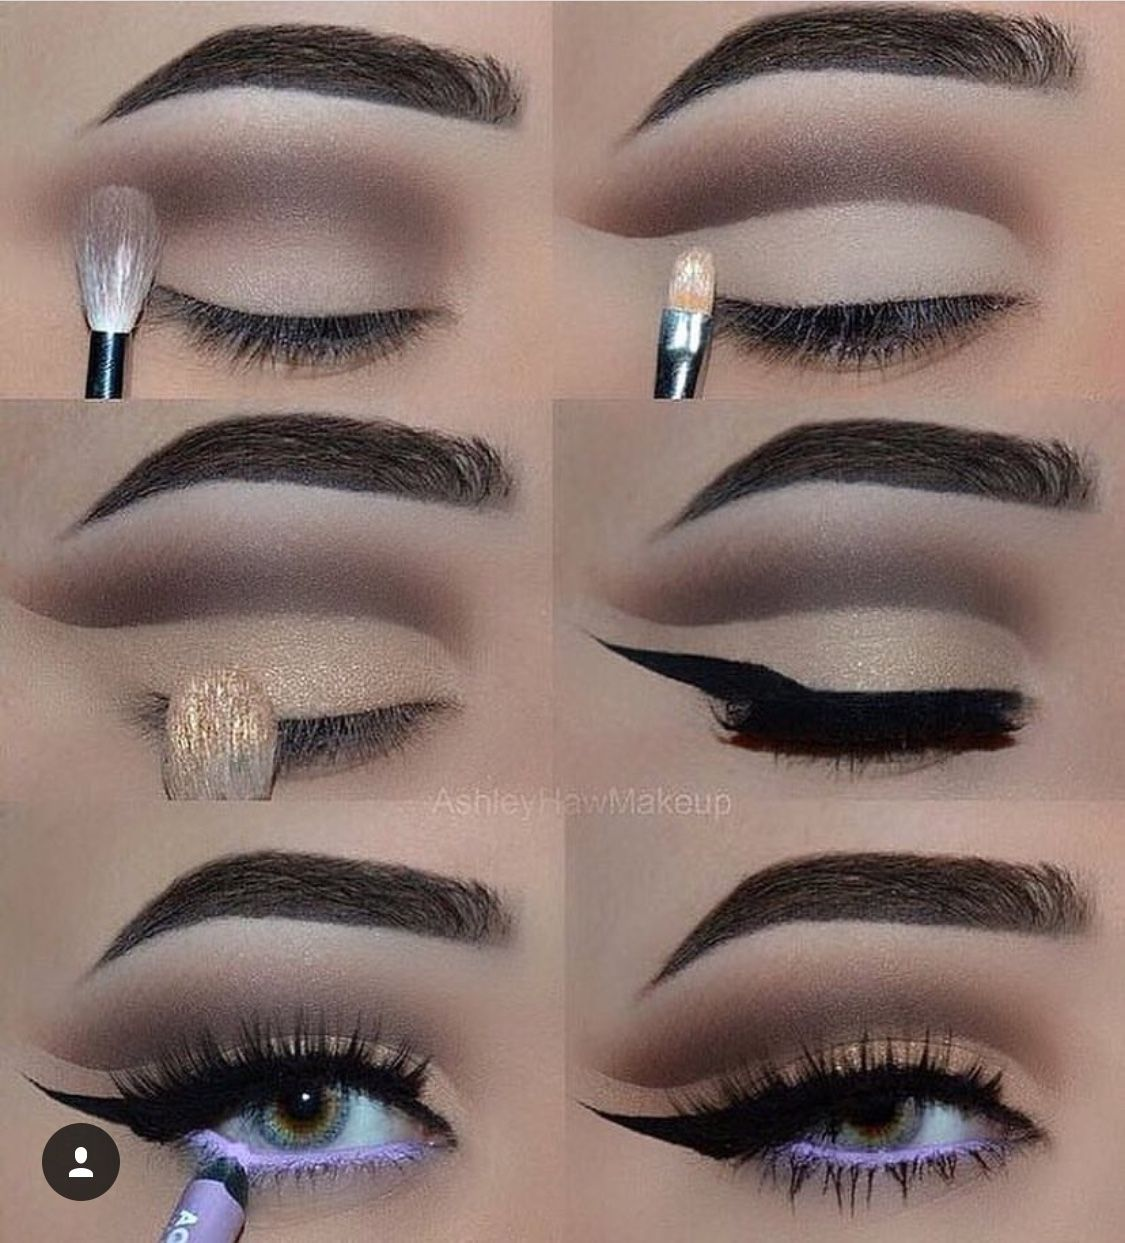 Pin on makeup tutorials.